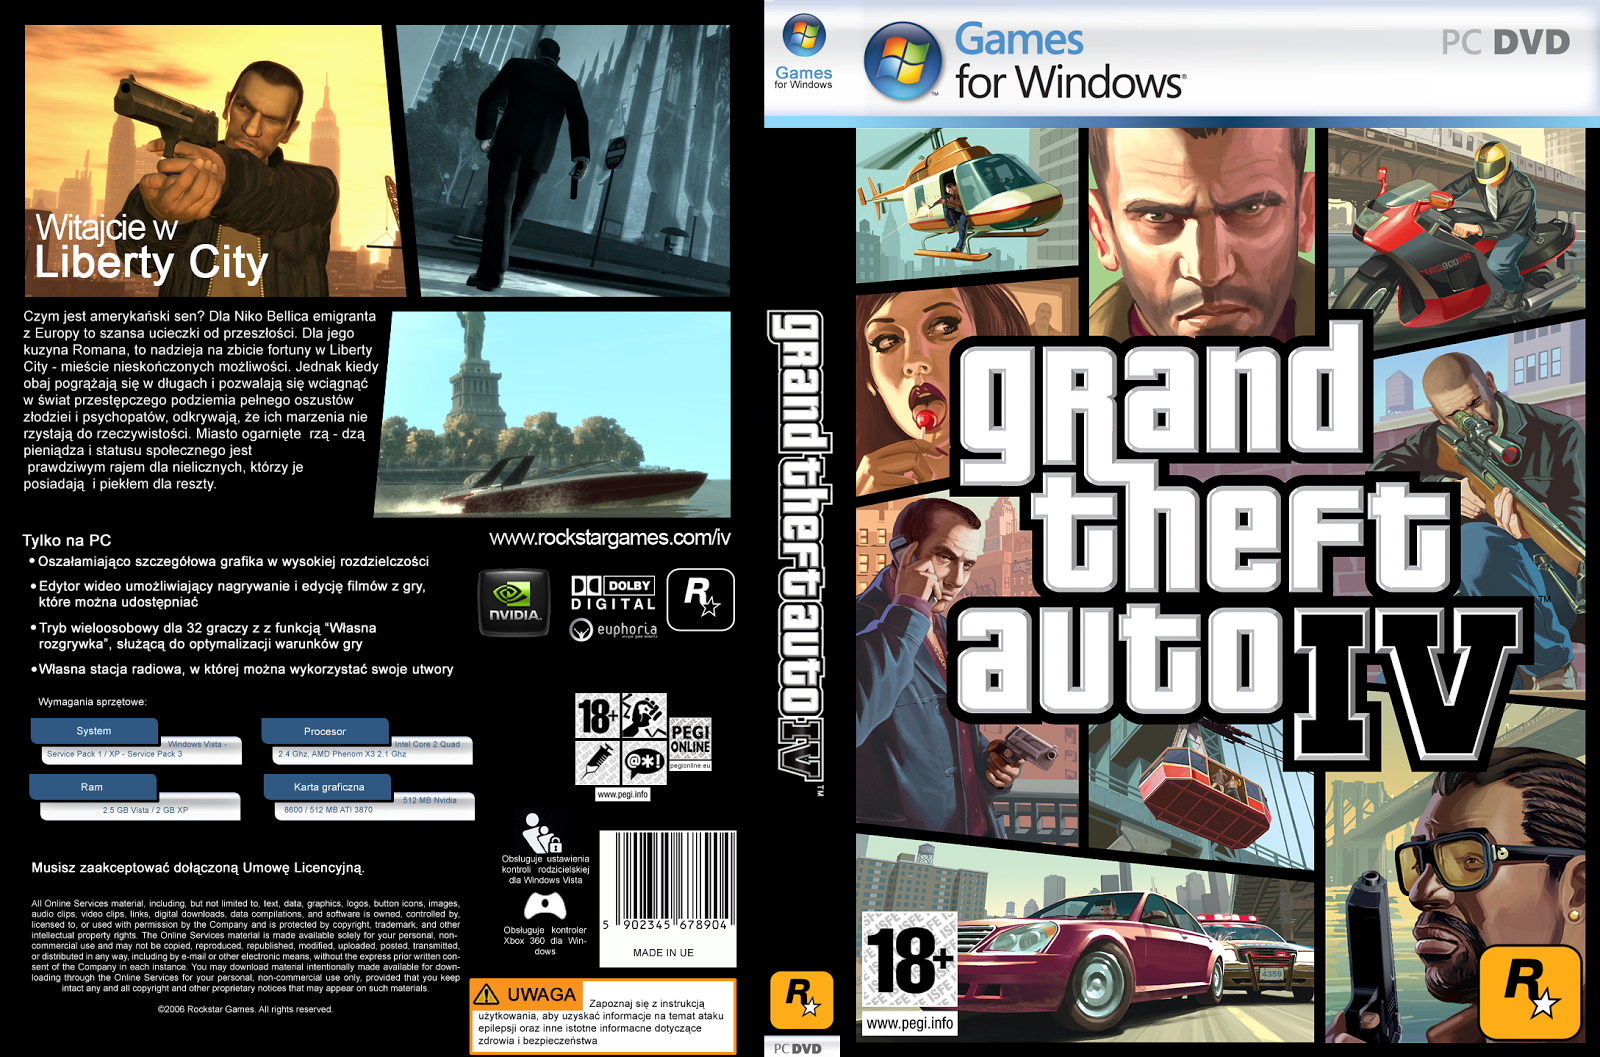 | GTA IV PC DOWNLOAD |